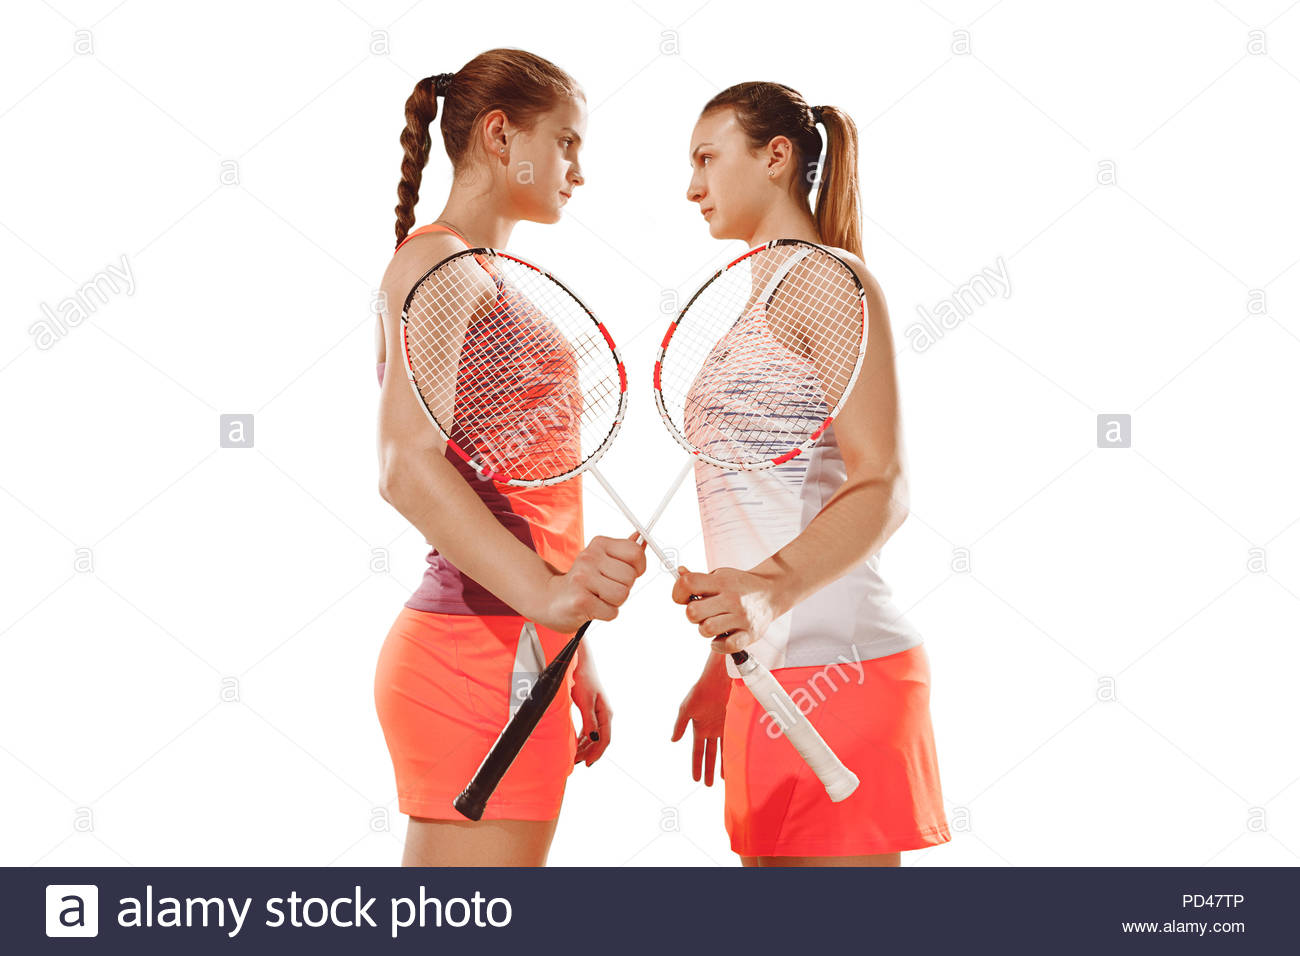 Young women before playing badminton standing over white studio 1300x956